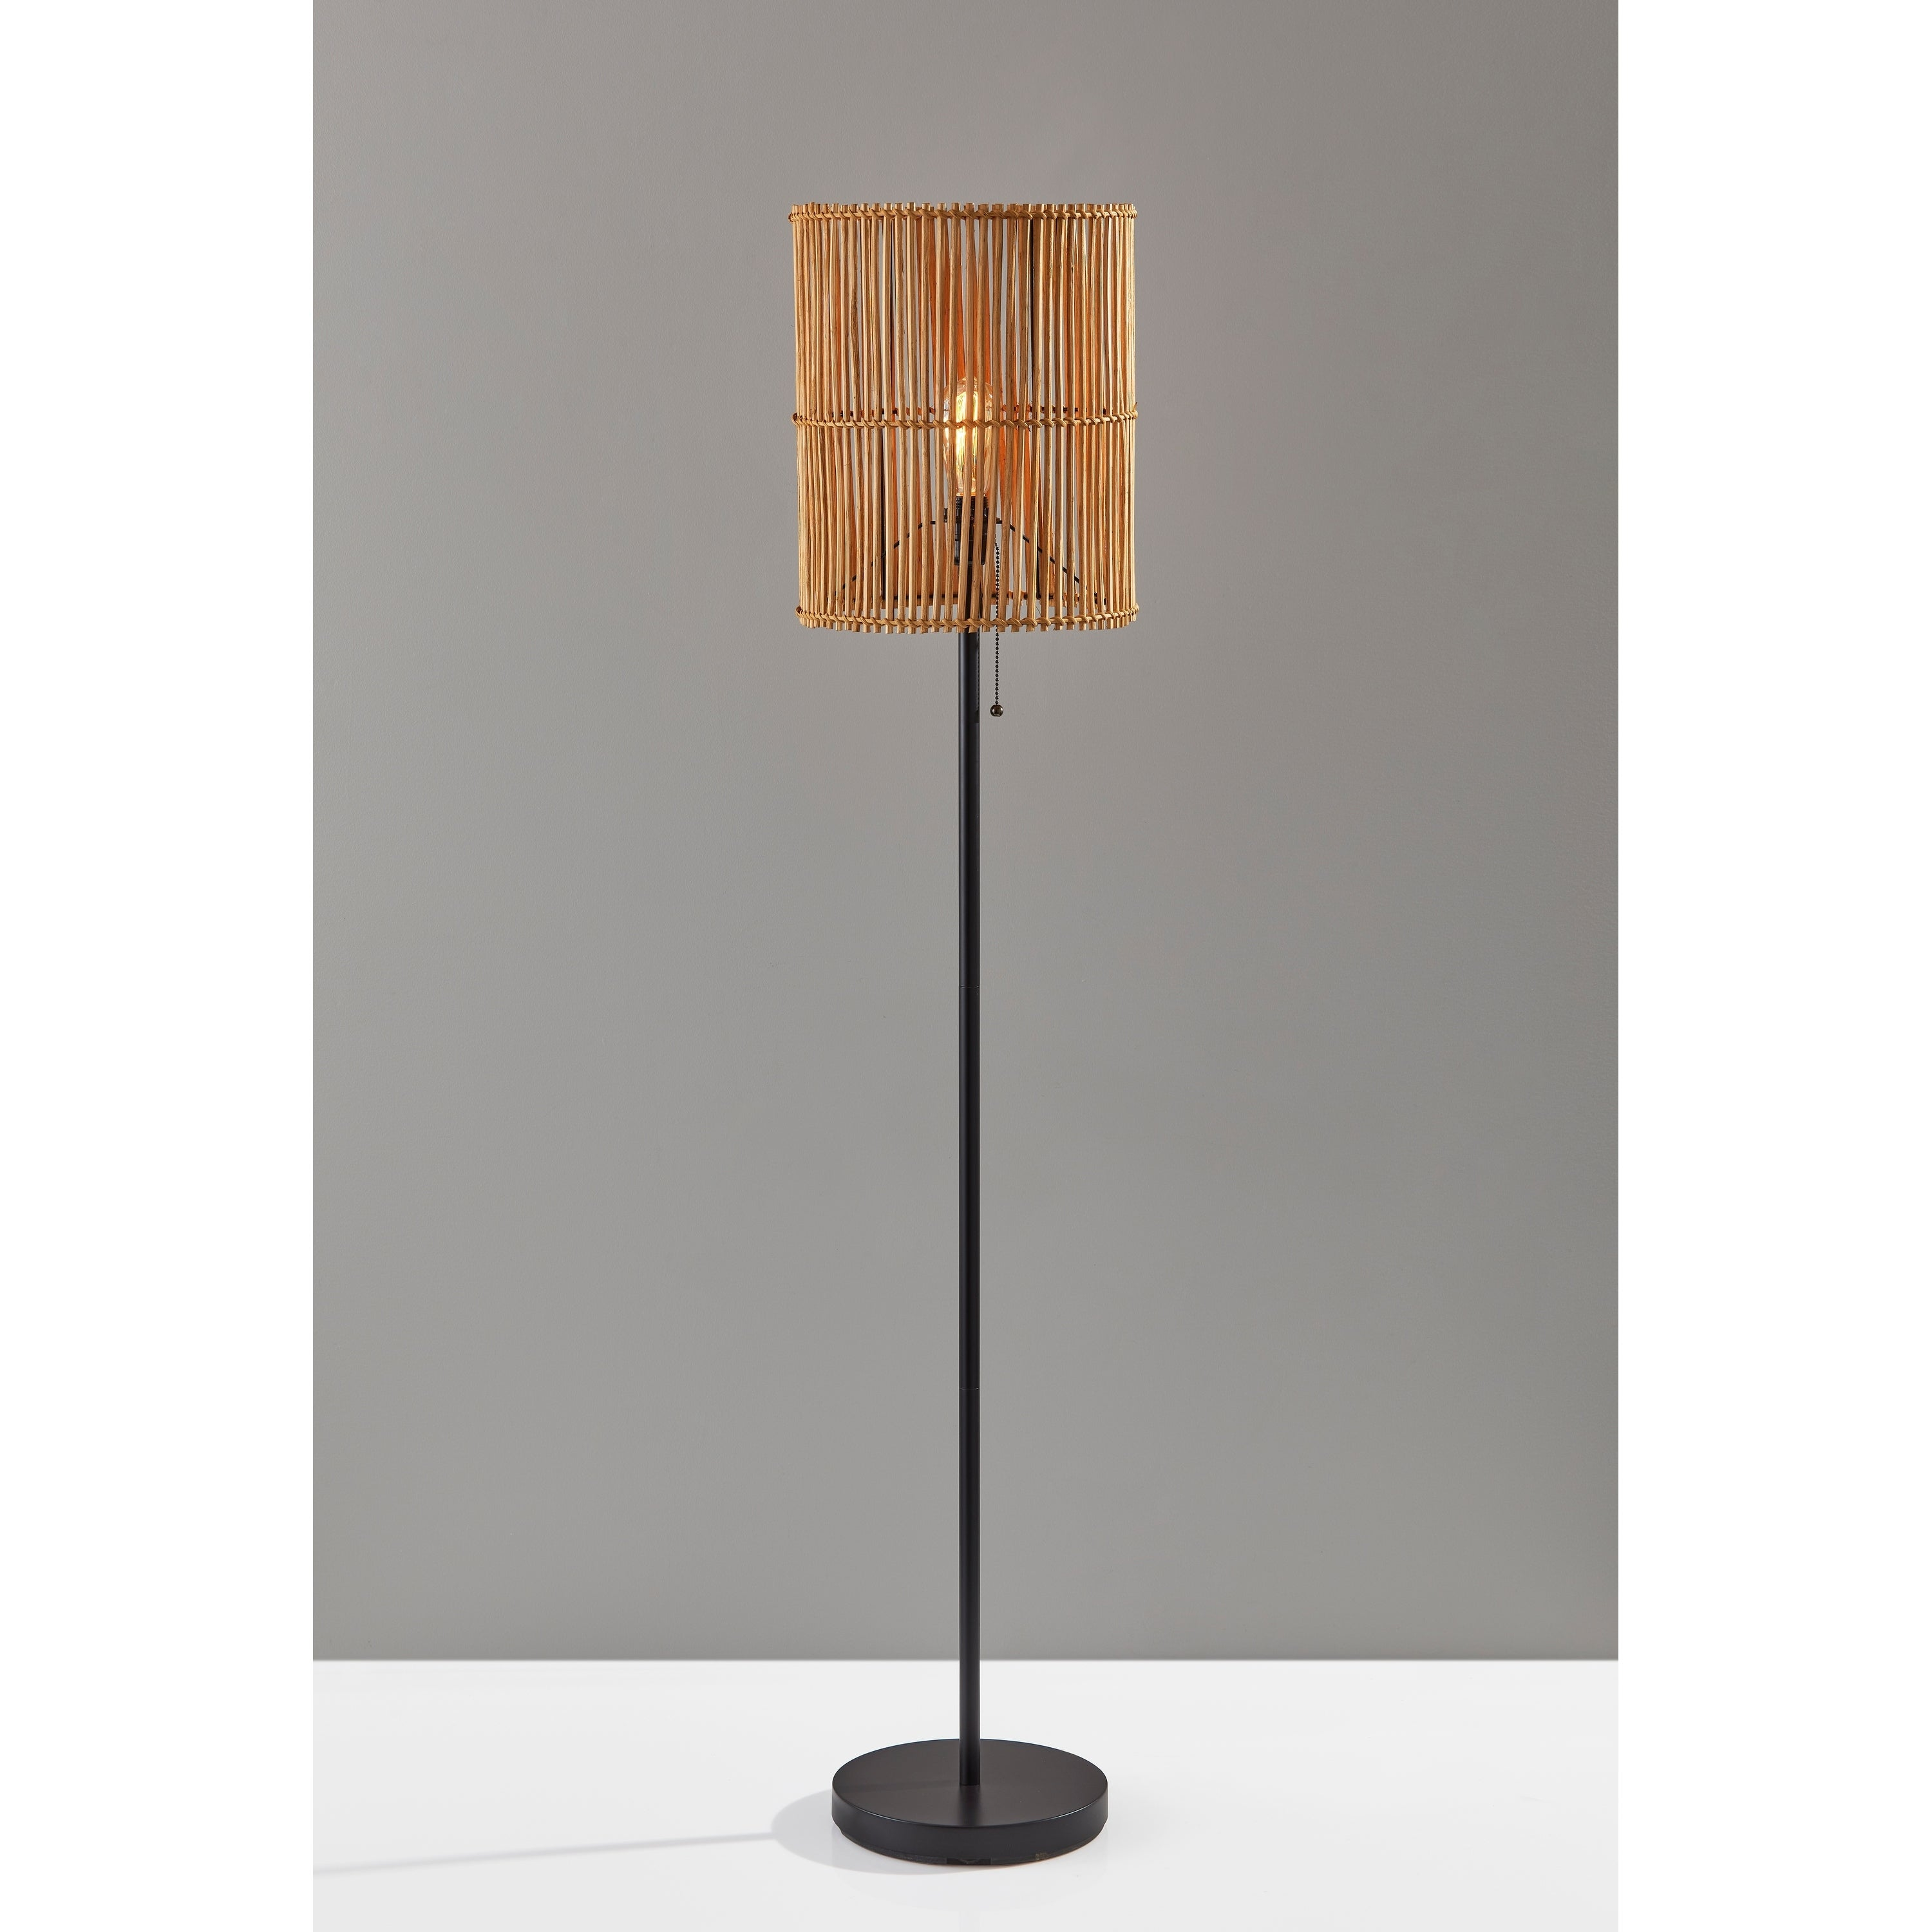 Image of: Shop Black Friday Deals On The Curated Nomad Sabla Dark Bronze Floor Lamp With Rattan Shade Overstock 30233560